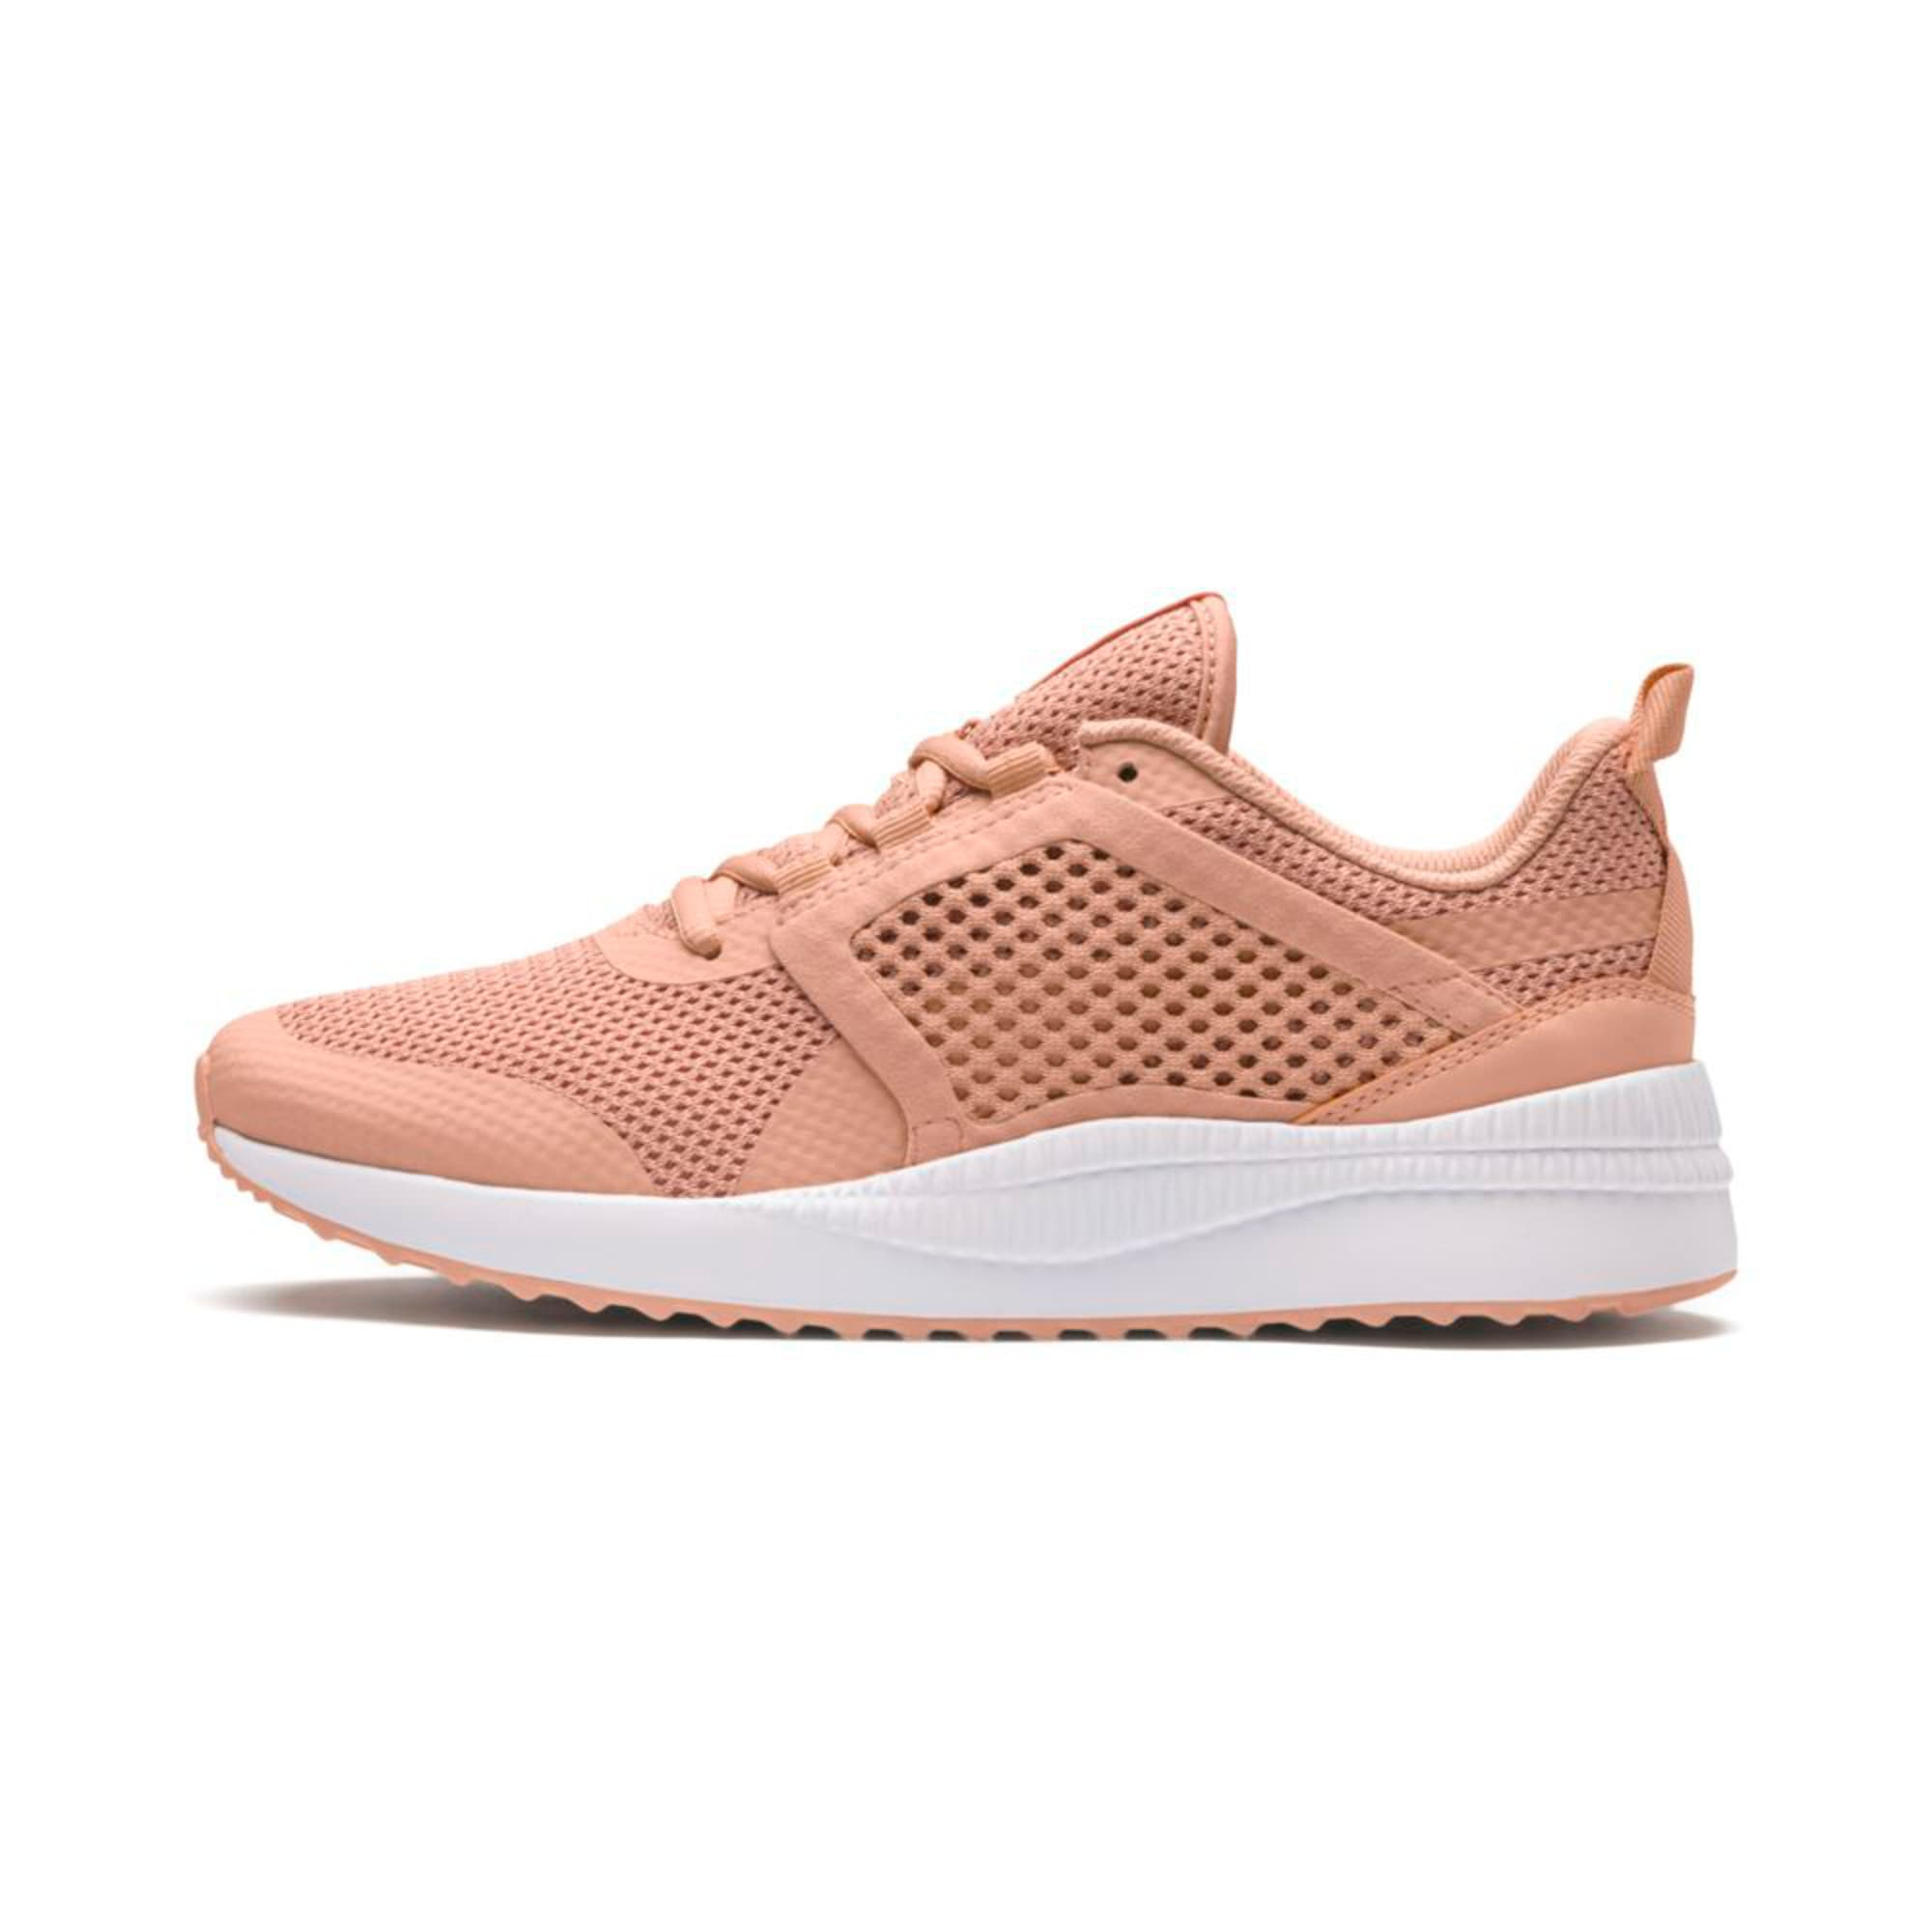 Thumbnail 1 of Pacer Next Net Trainers, Dusty Coral-Coral-White, medium-IND